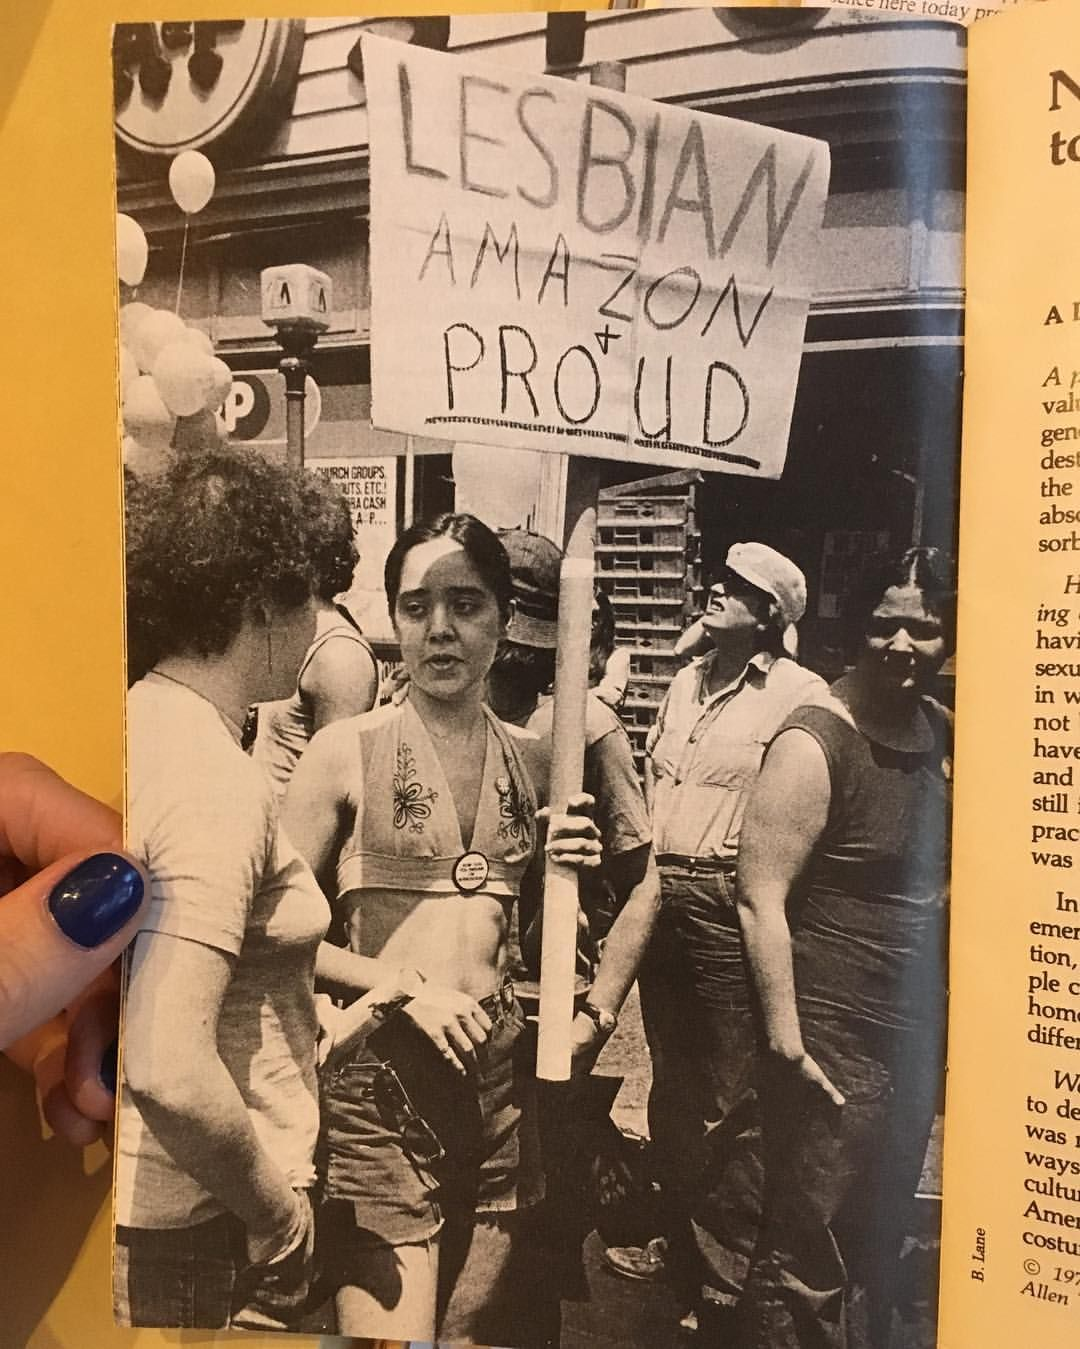 """""""Lesbian, Amazon, and Proud"""" - This picture is the inside cover of the March on Washington for Lesbian and Gay Rights """"souvenir program,"""" 1979.  Photo credit: Bettye Lane"""